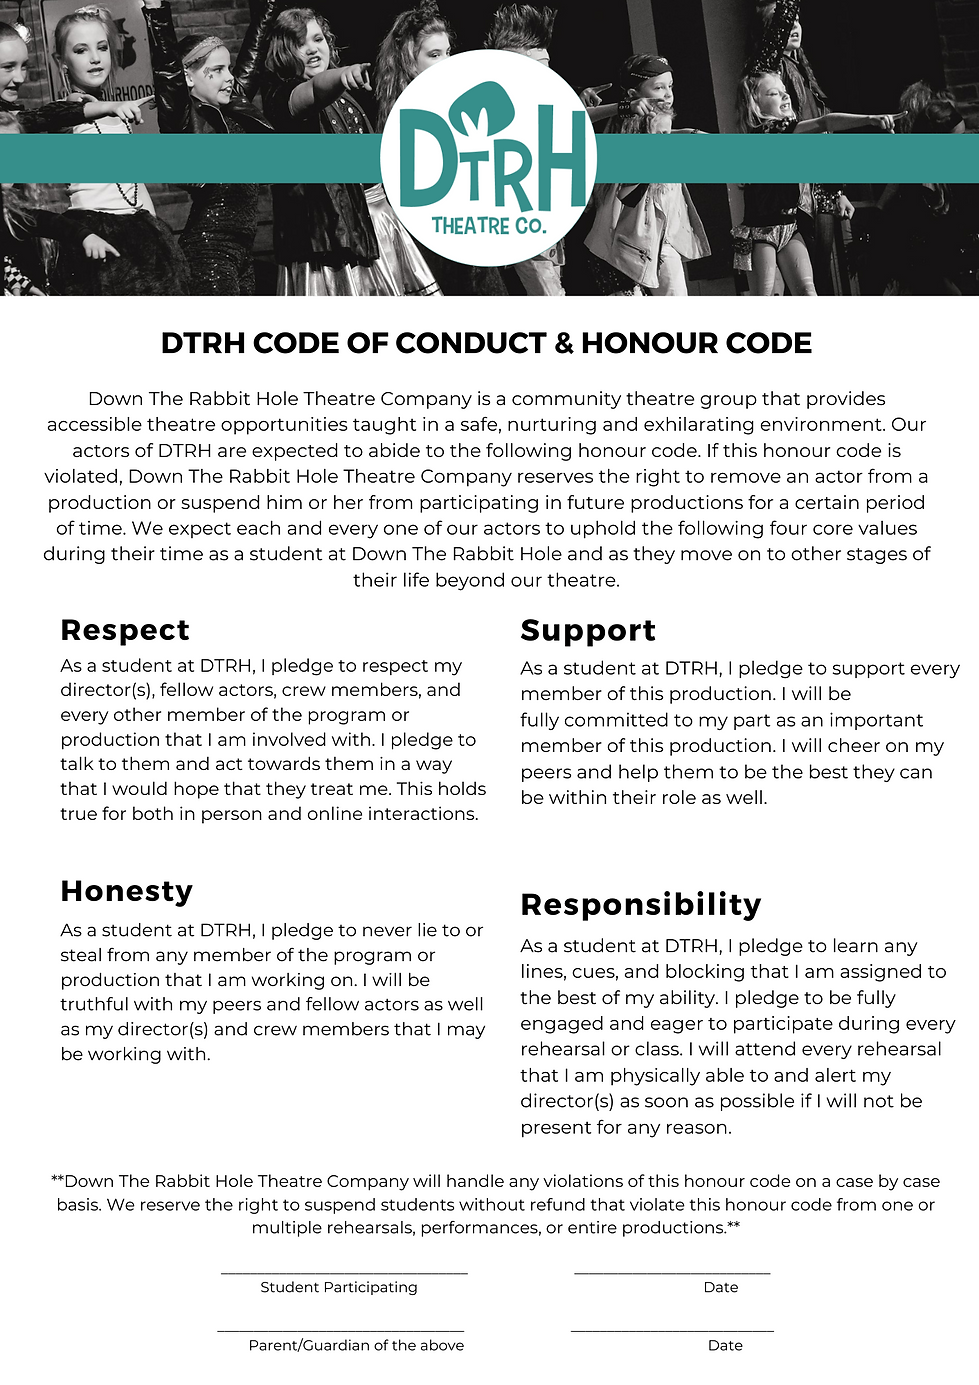 DTRH CODE OF CONDUCT 2021.png